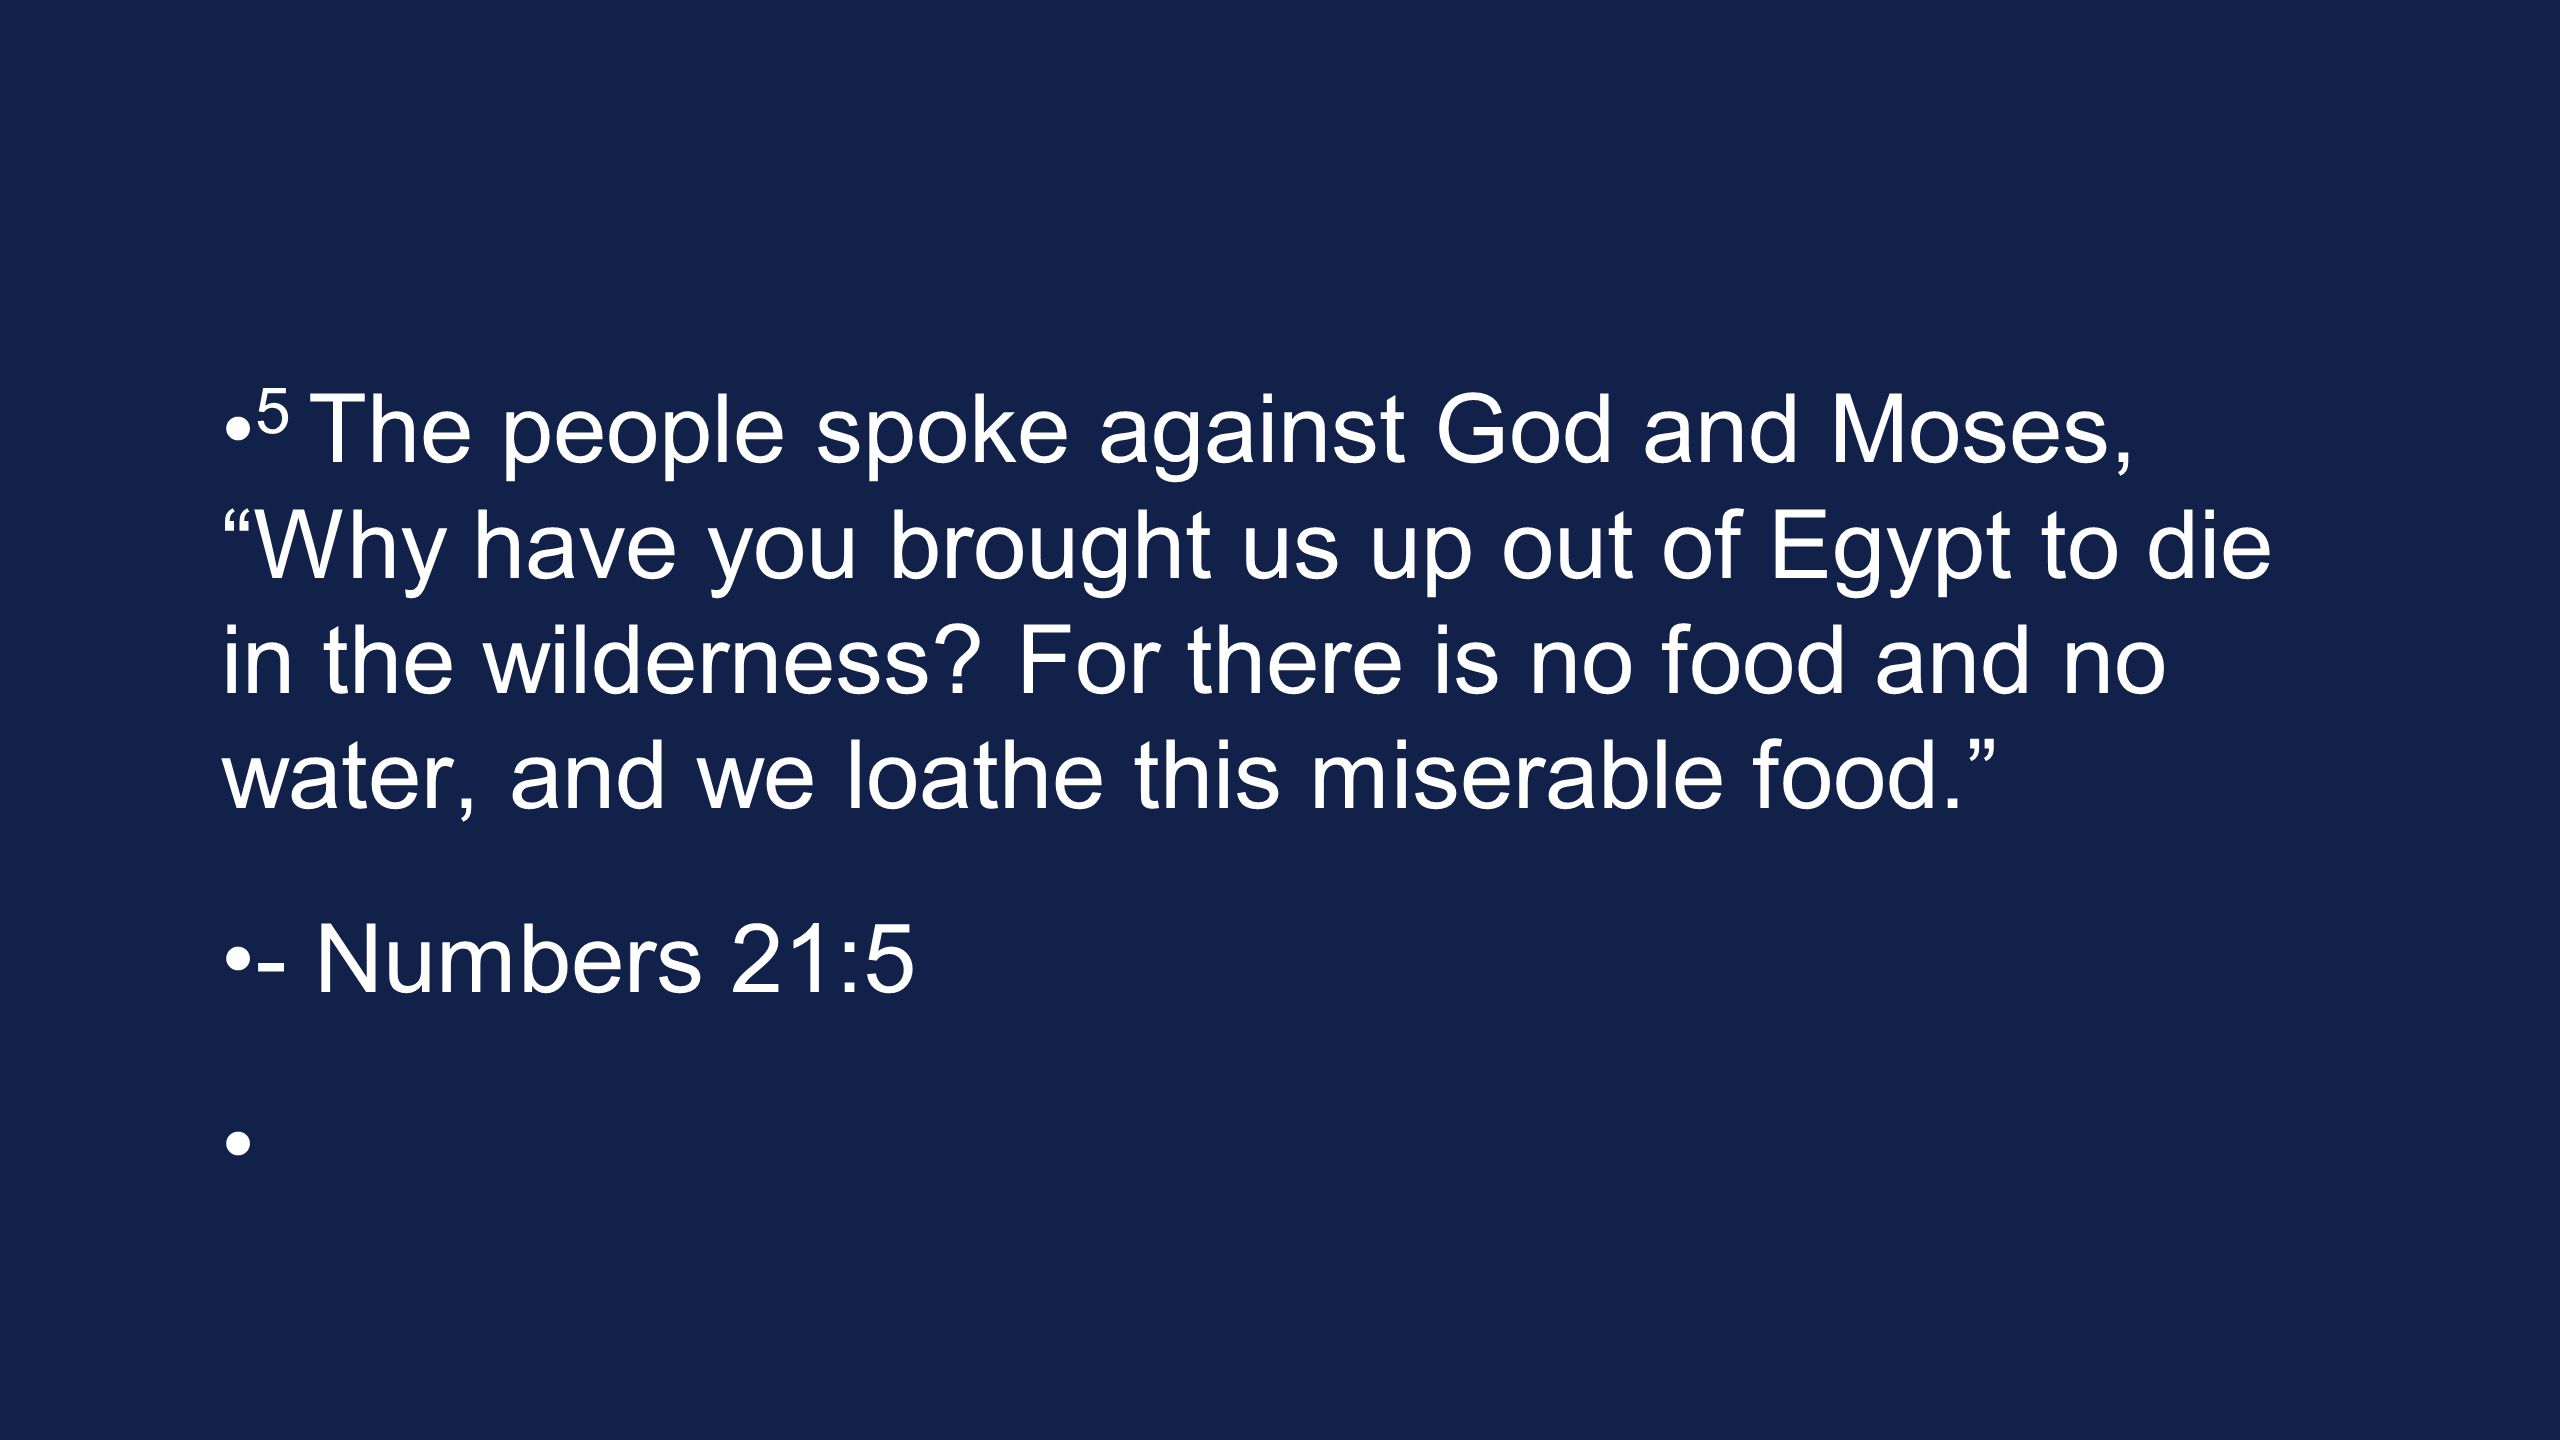 5 The people spoke against God and Moses, Why have you brought us up out of Egypt to die in the wilderness.